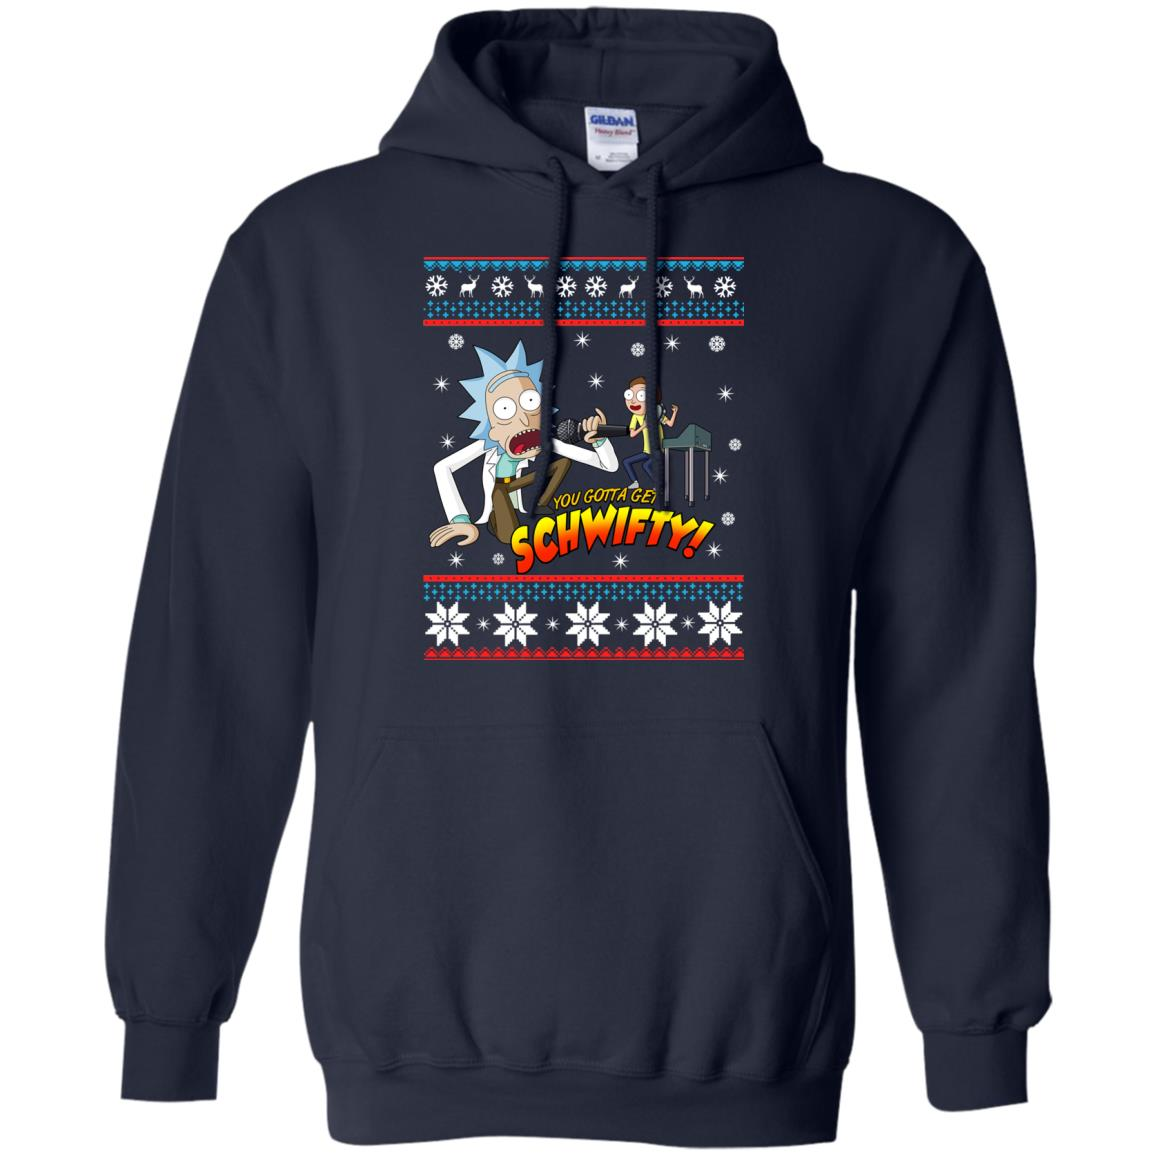 image 2414 - You gotta get Schwifty Ugly Christmas sweater, hoodie